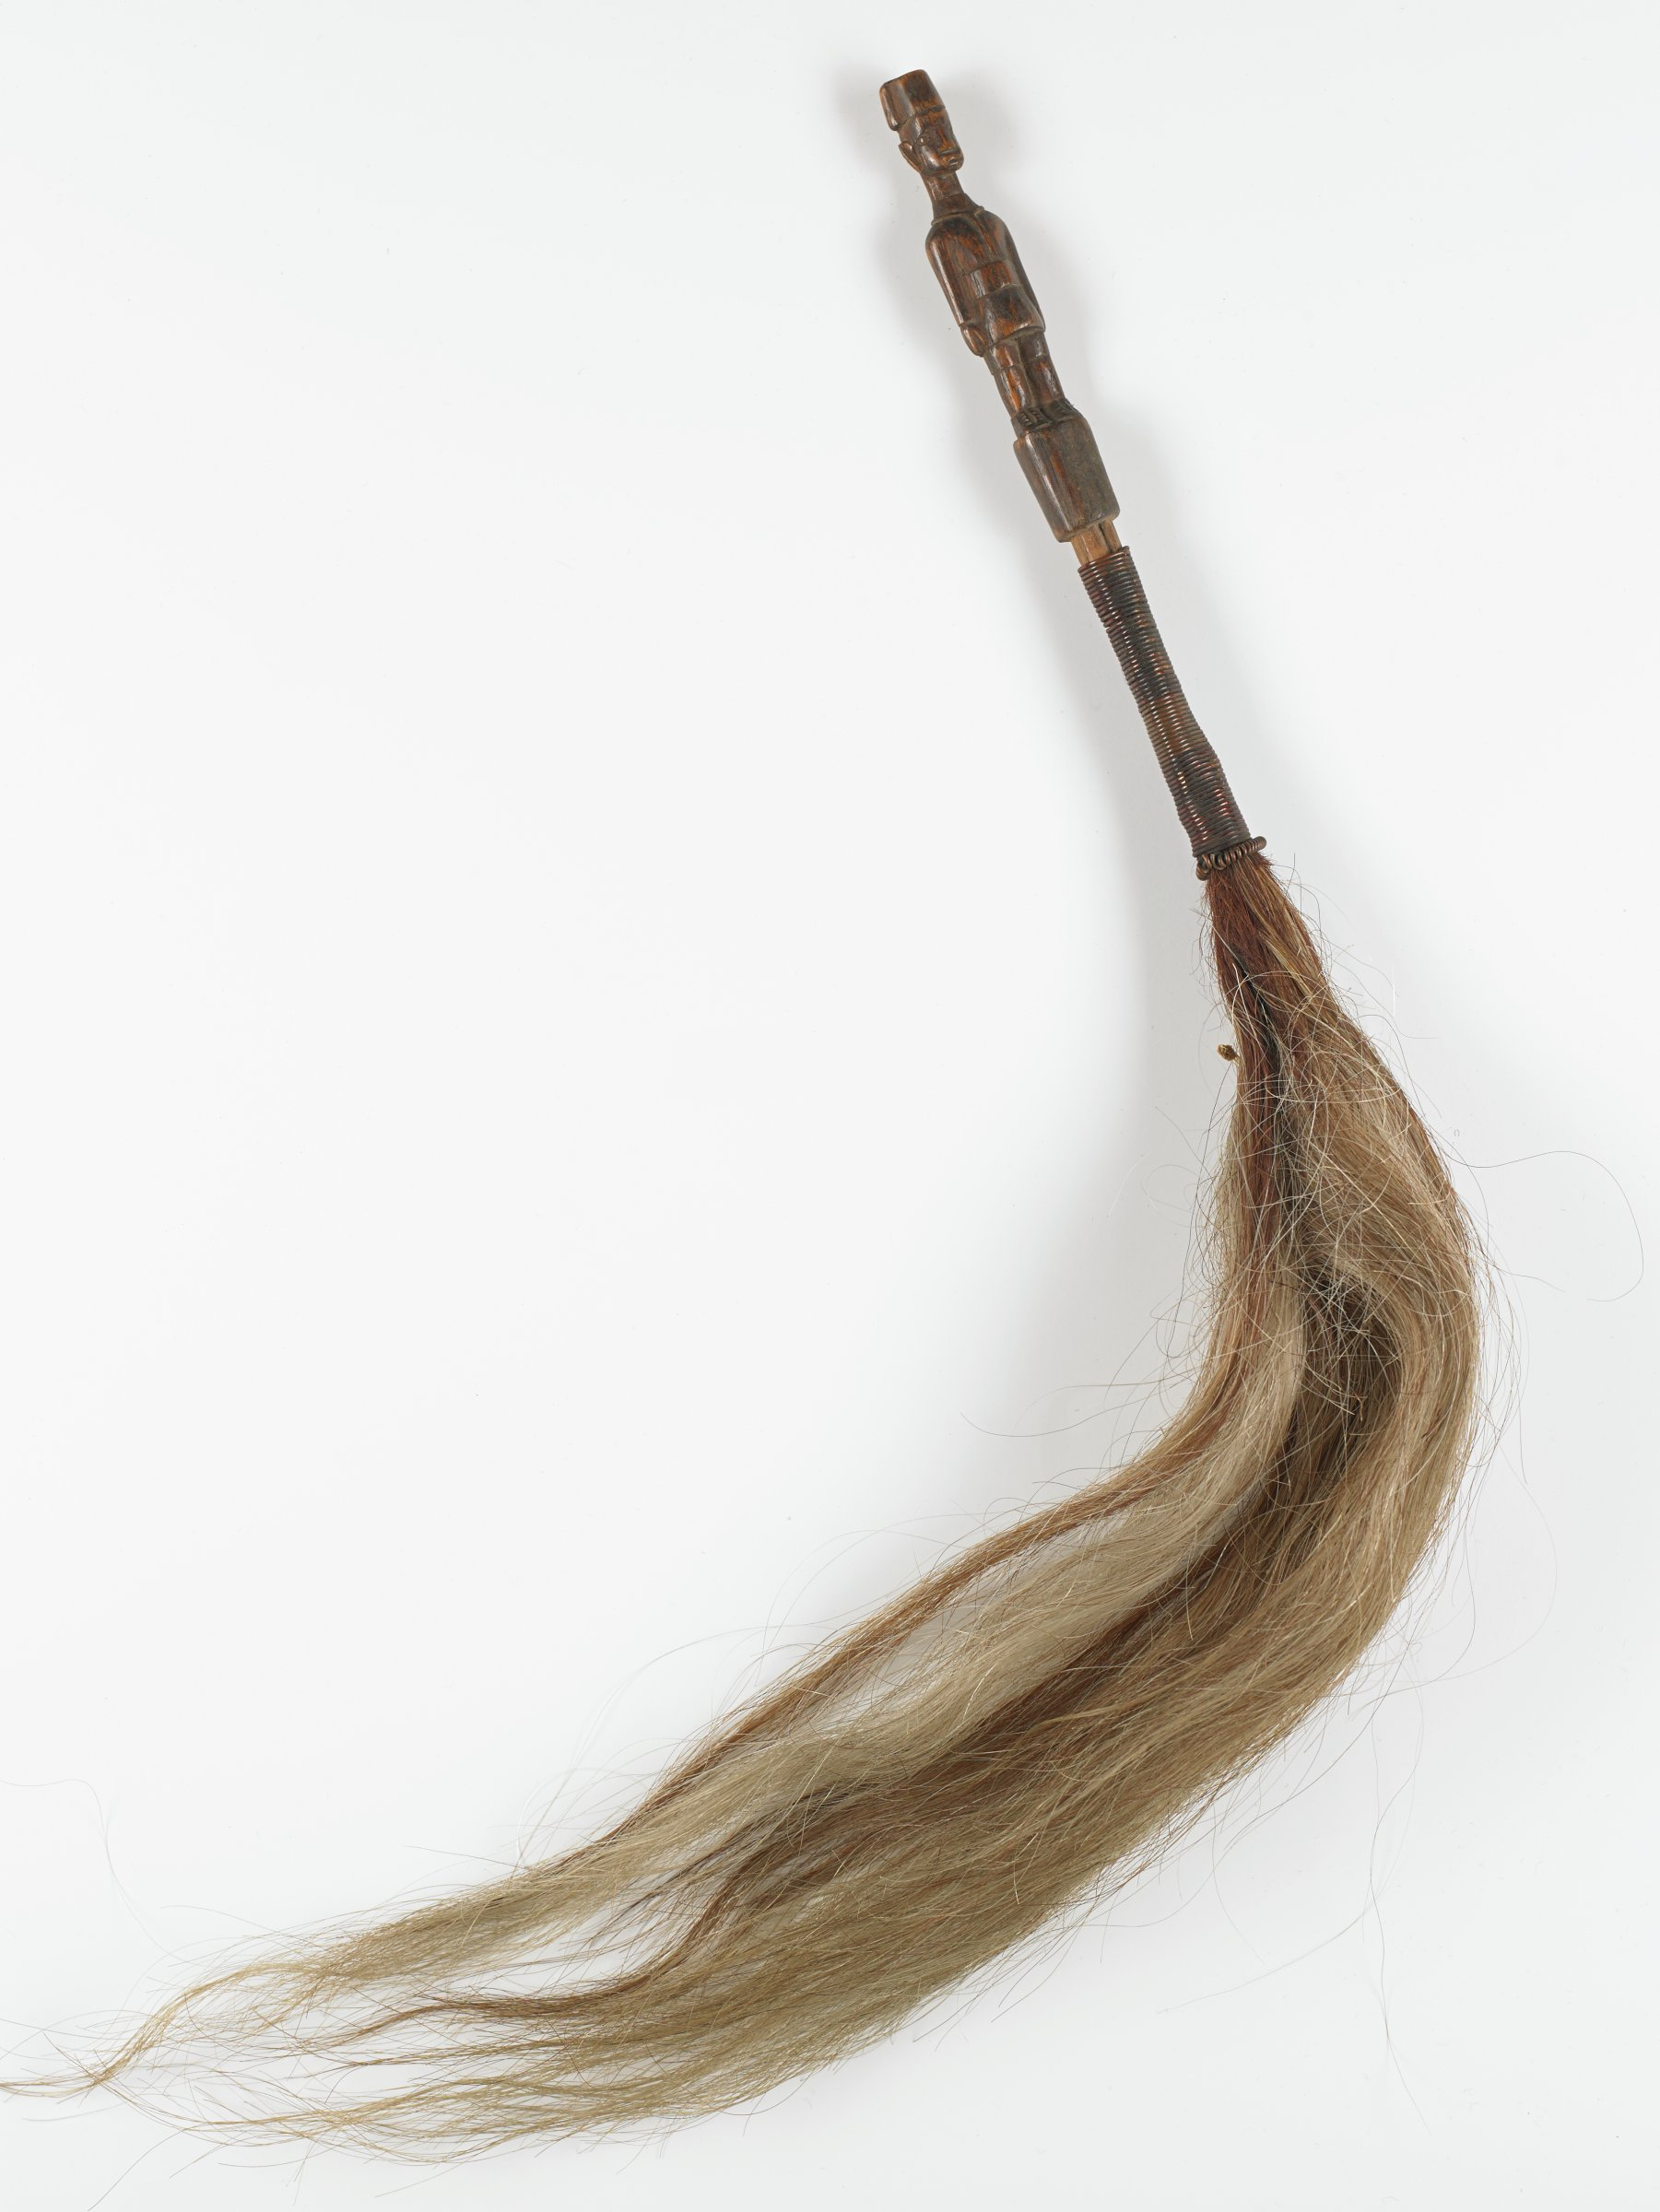 Fly Whisk, Western Nigeria, African, wood